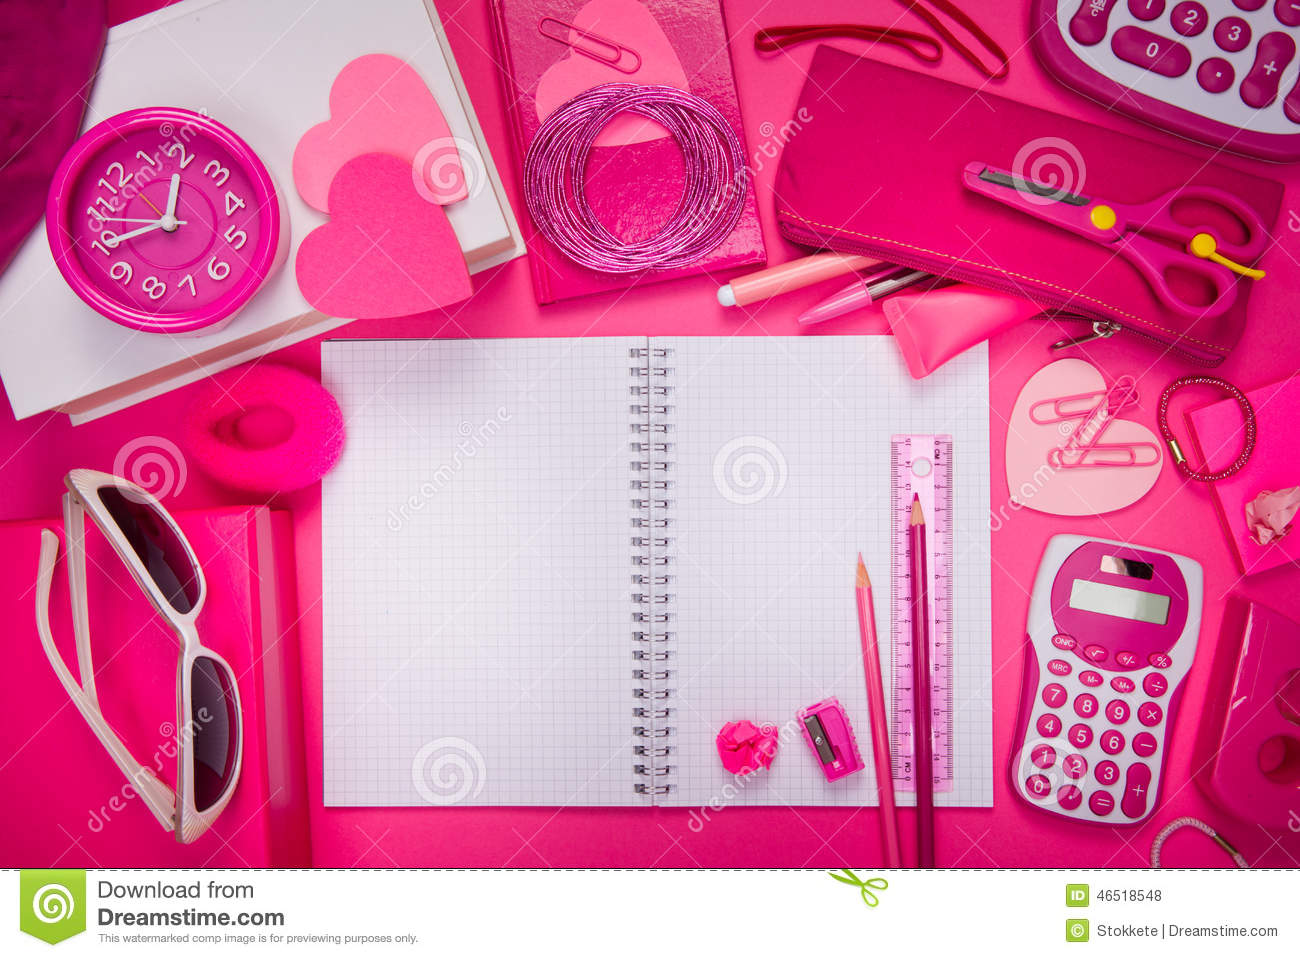 Bureau et papeterie roses girly photo stock image 46518548 for Papeterie bureau plus